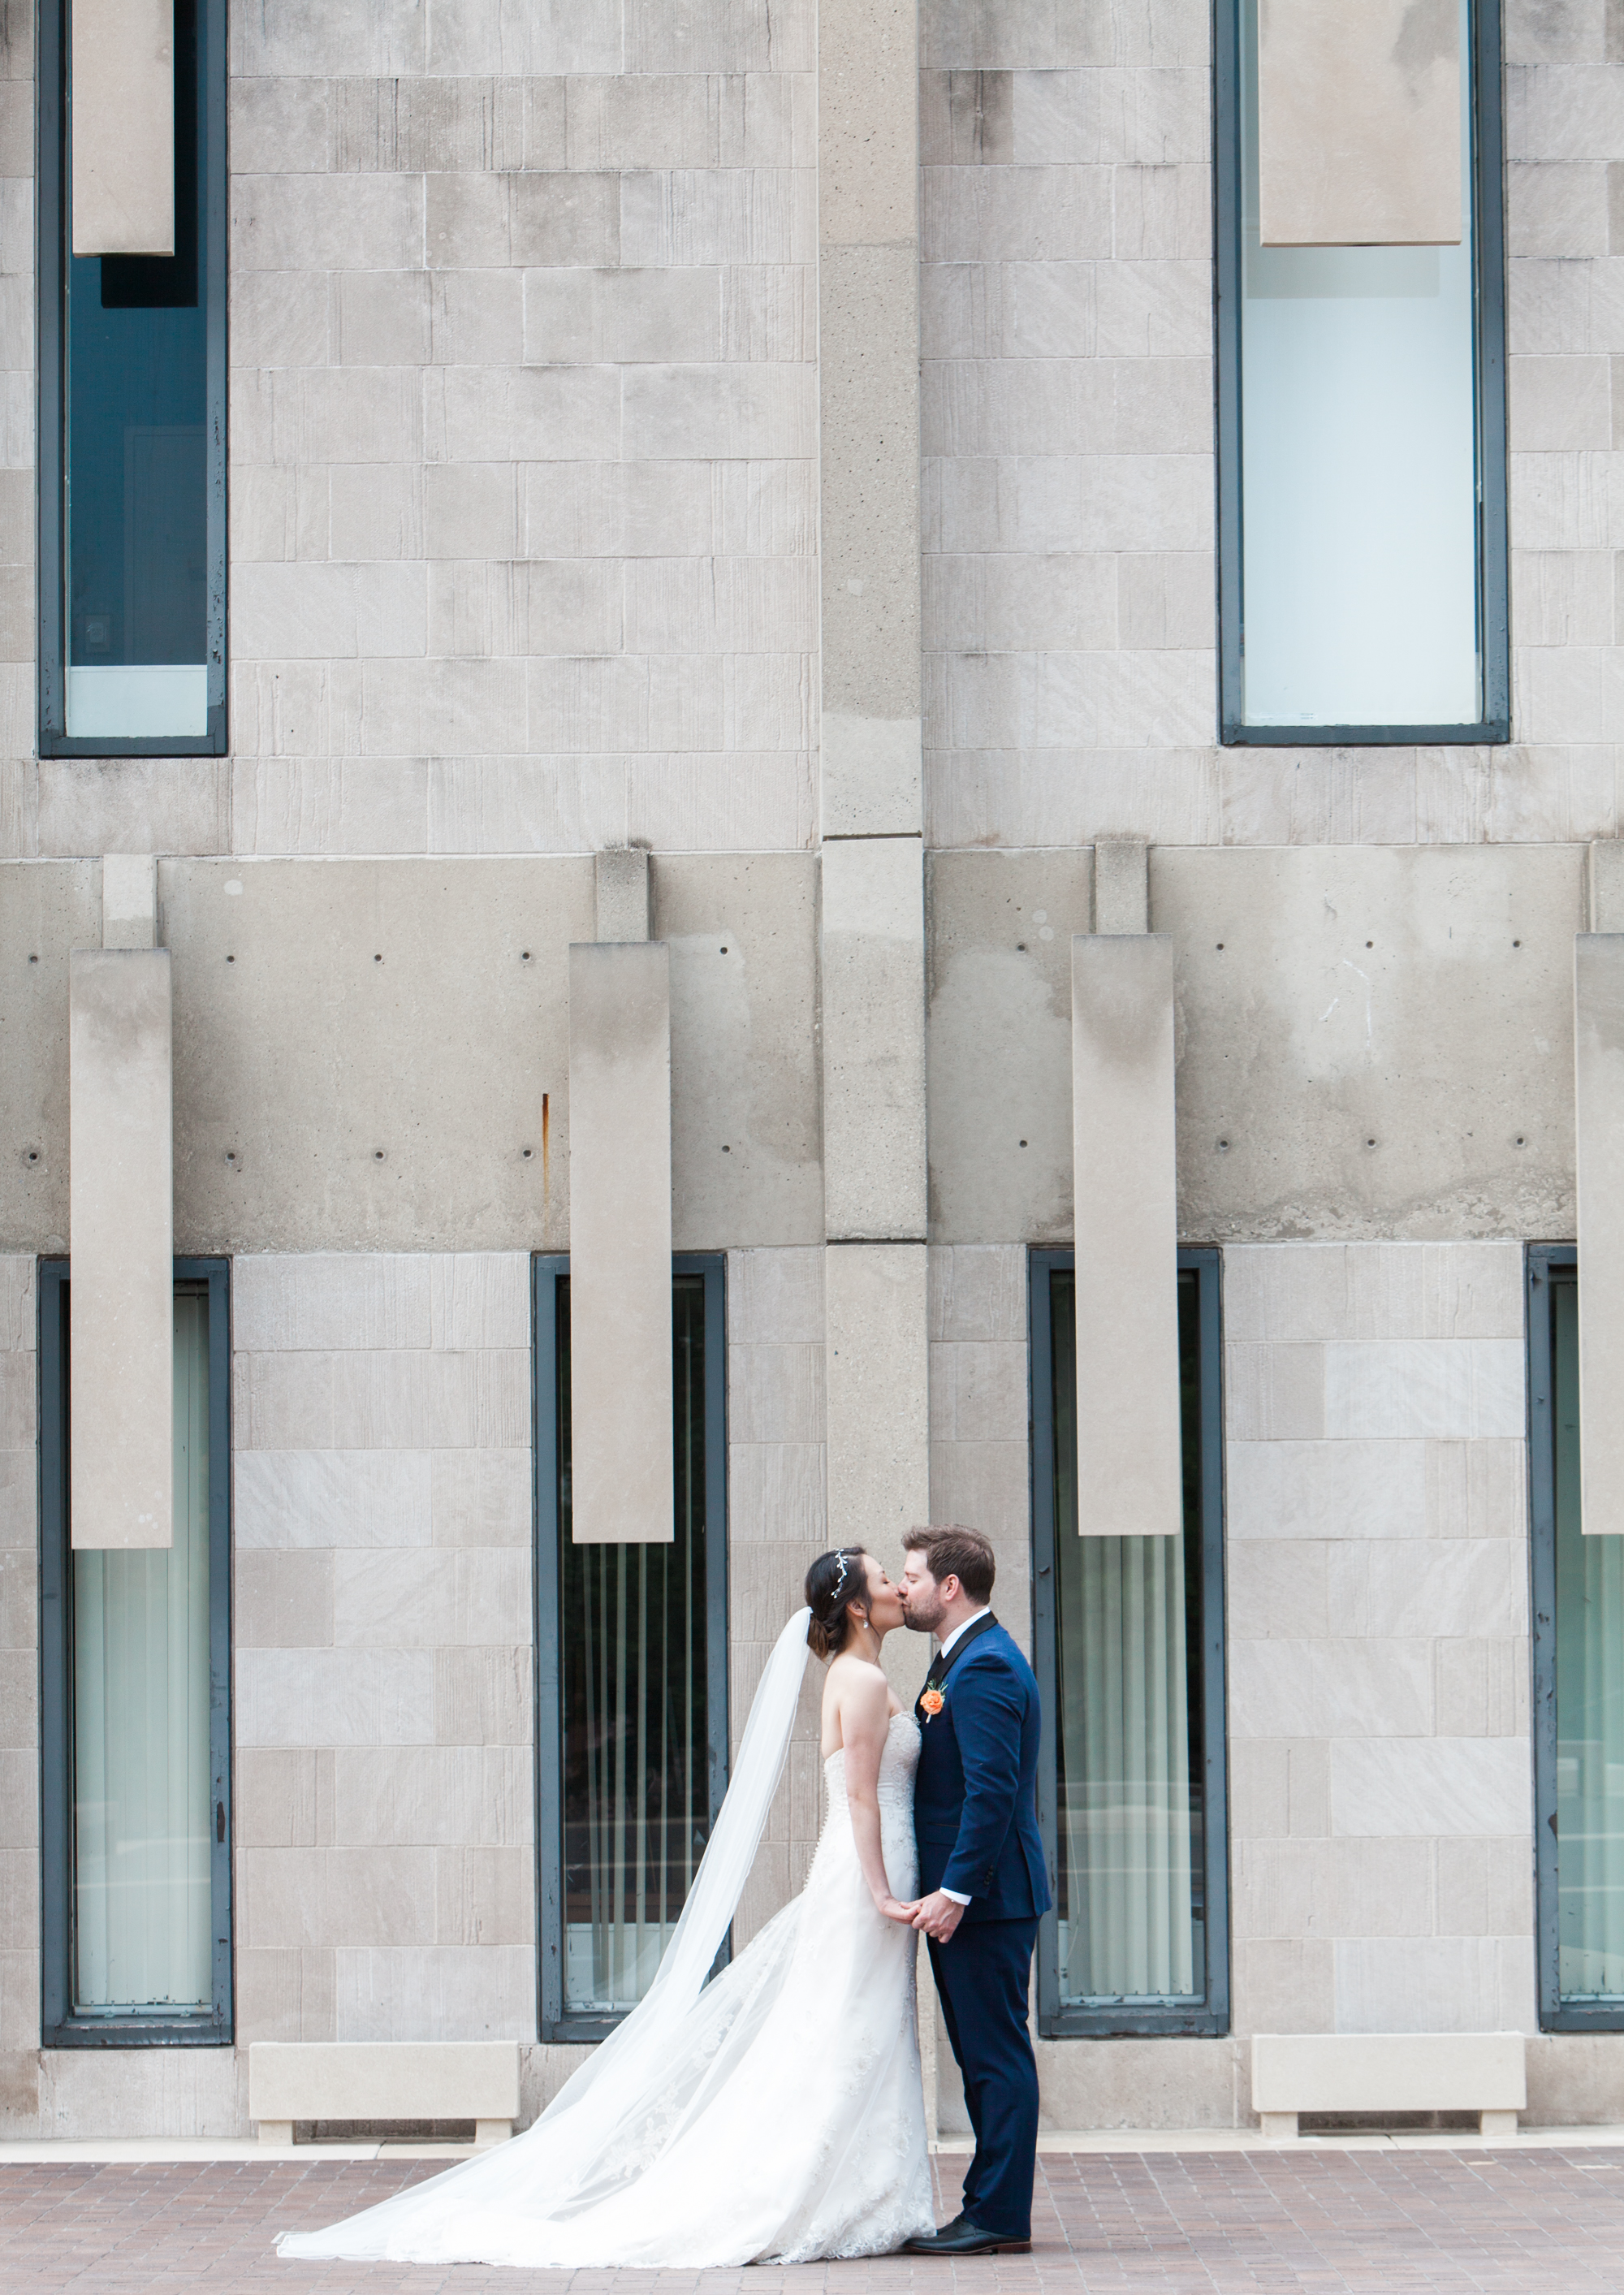 Bonphotage Chicago Wedding Photographer - Northwestern University